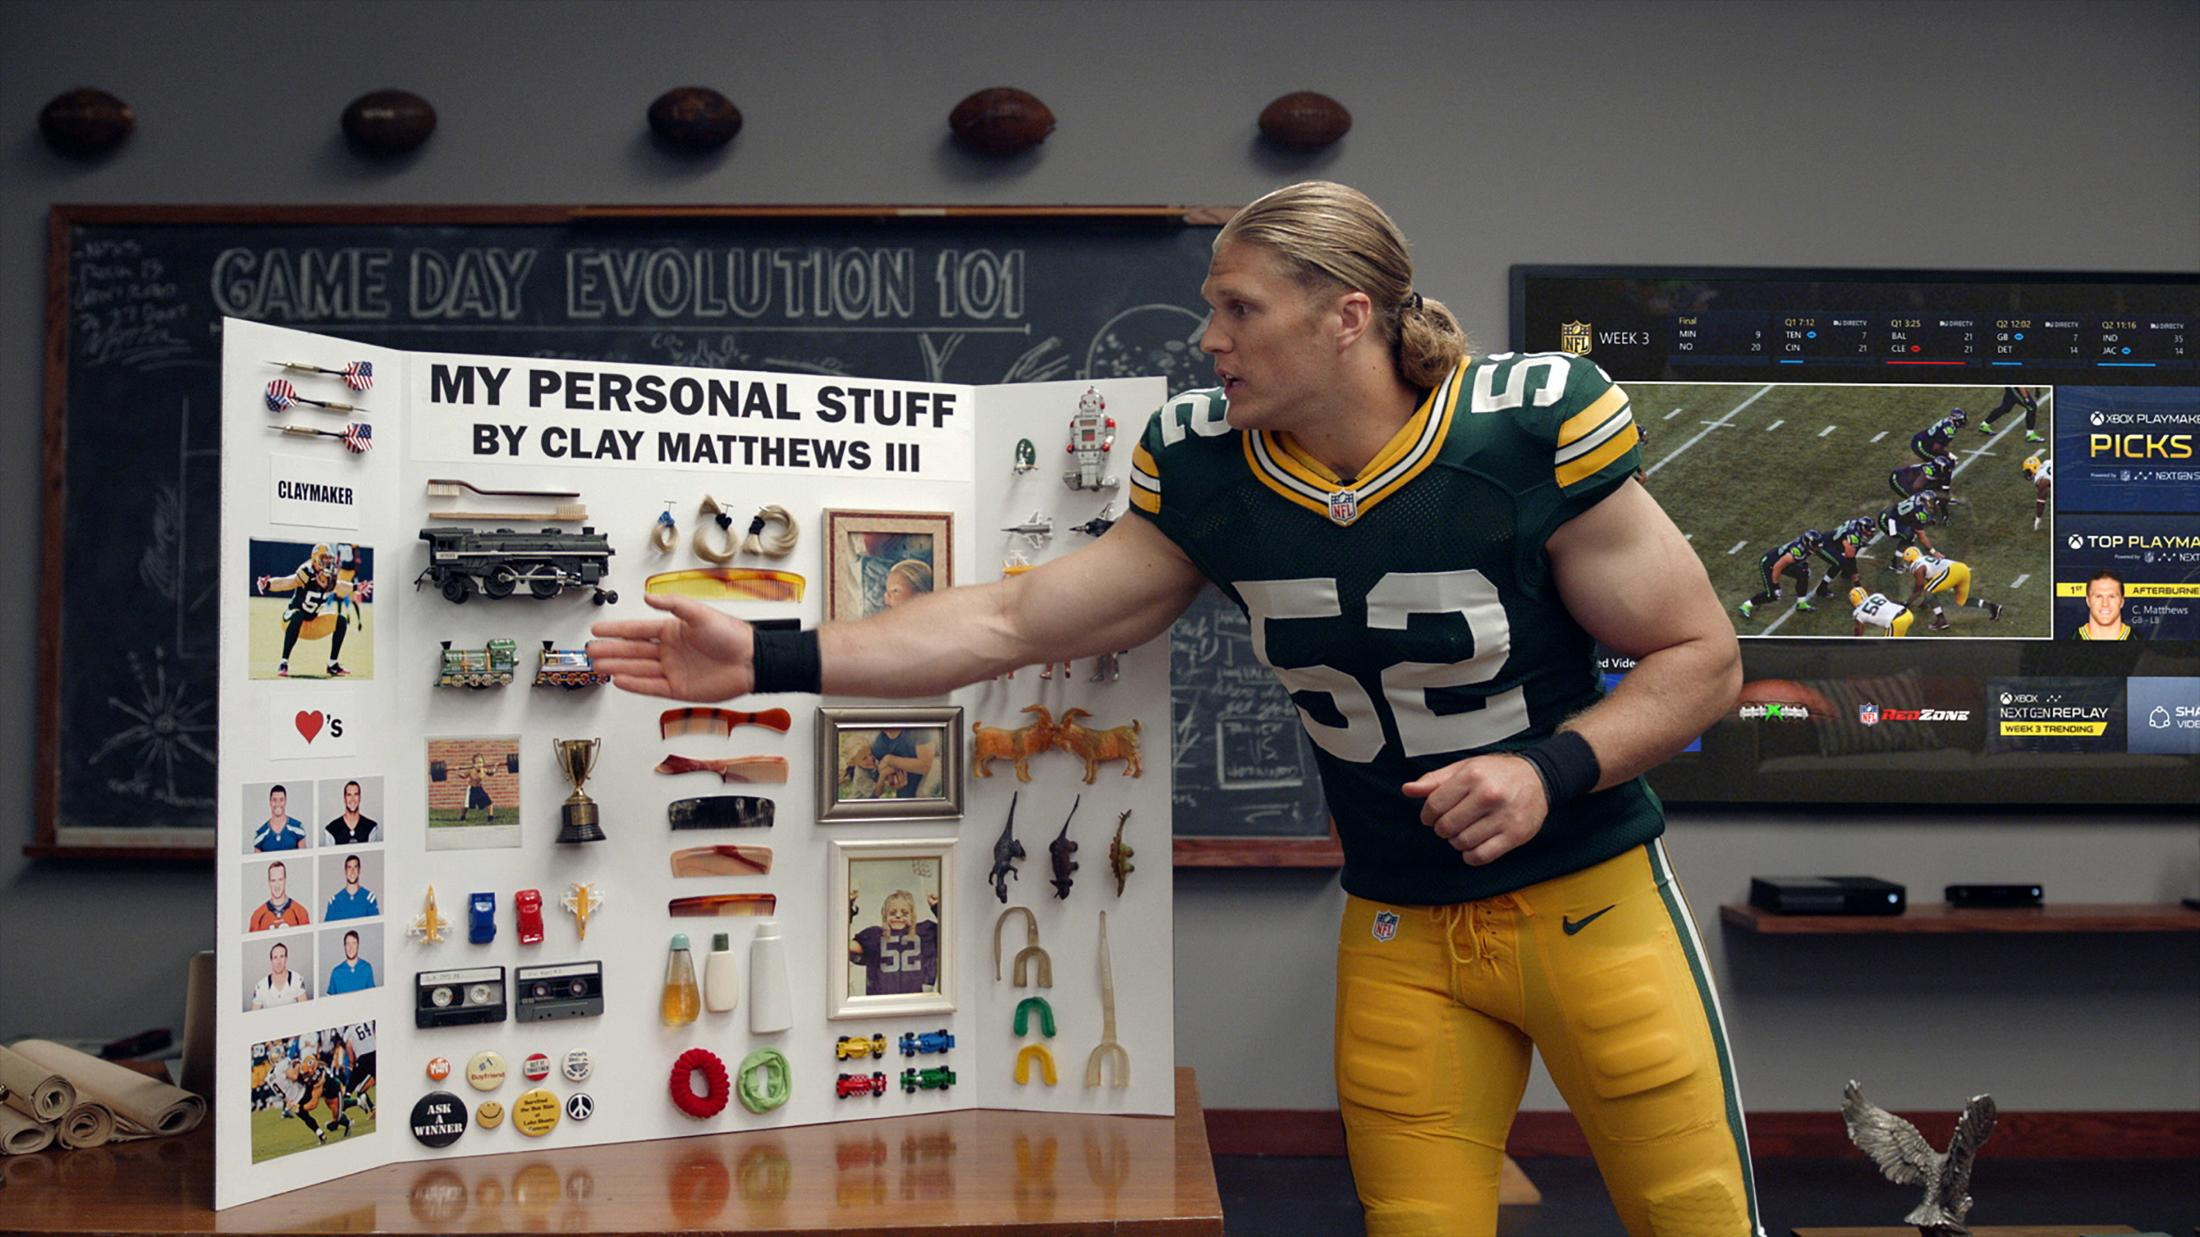 Thumbnail for Personalized Content with Clay Matthews III